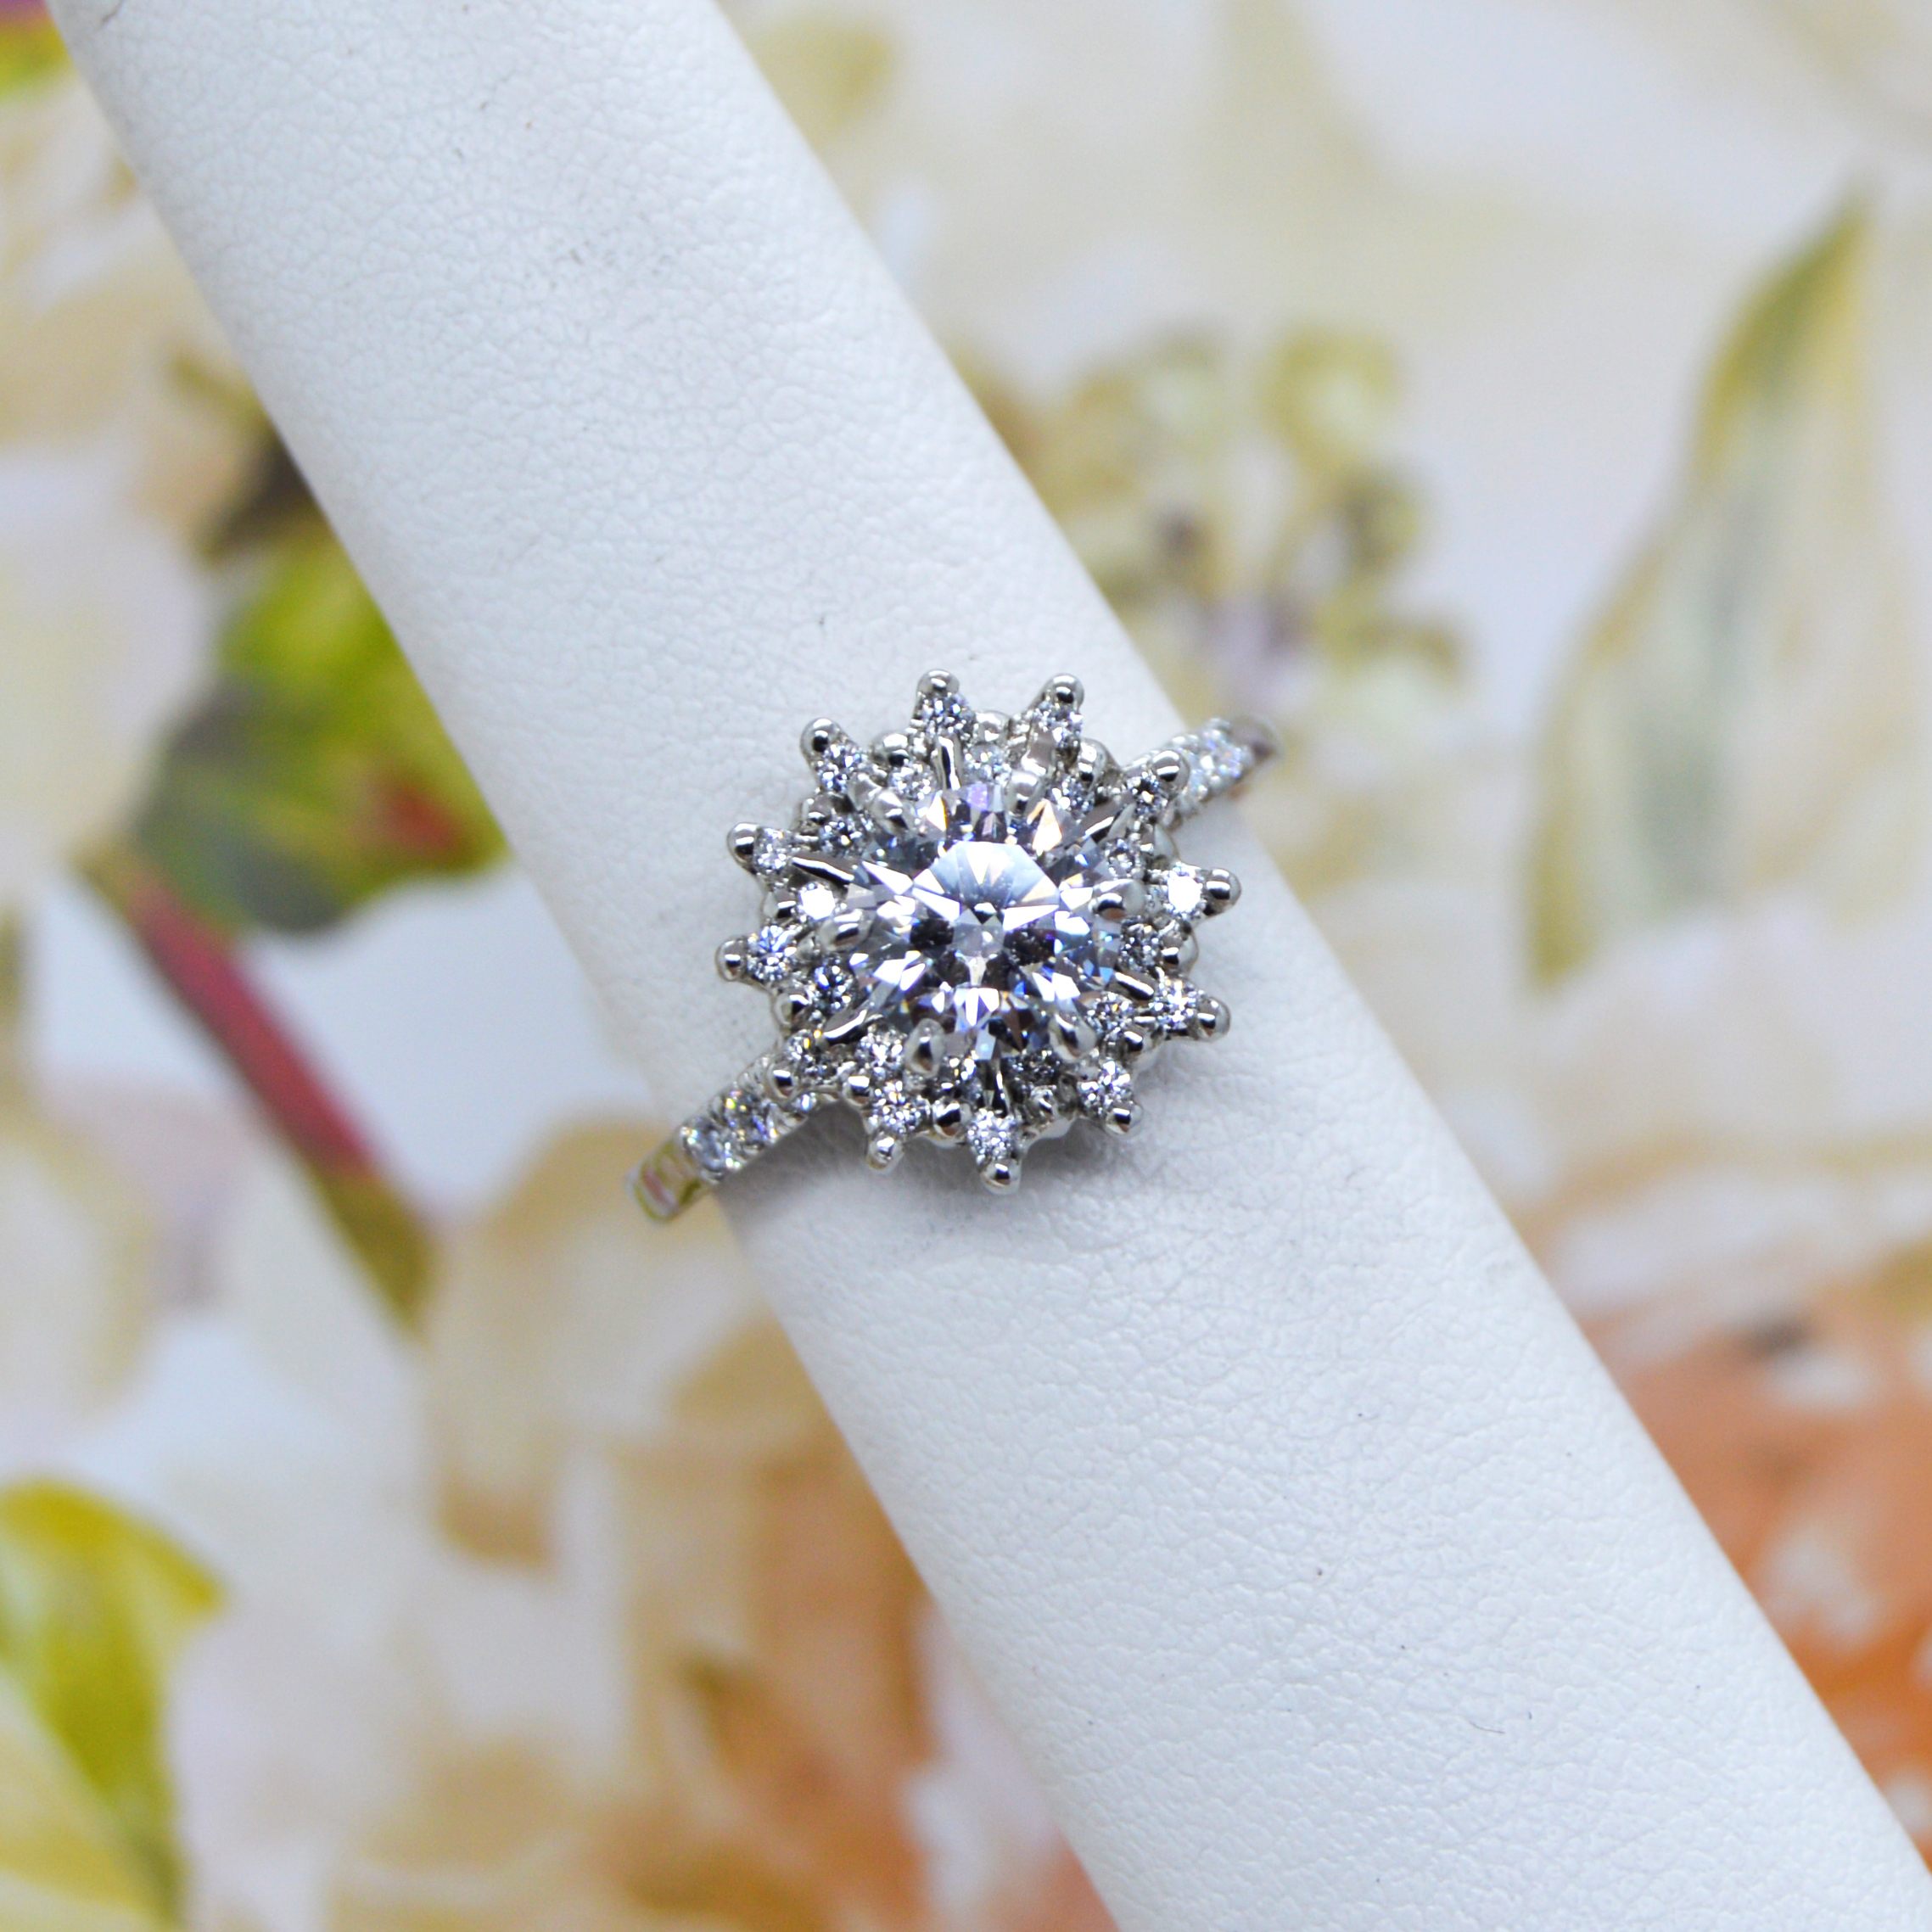 Prong set engagement ring with halo and accent diamonds designed by Morgan's Treasure